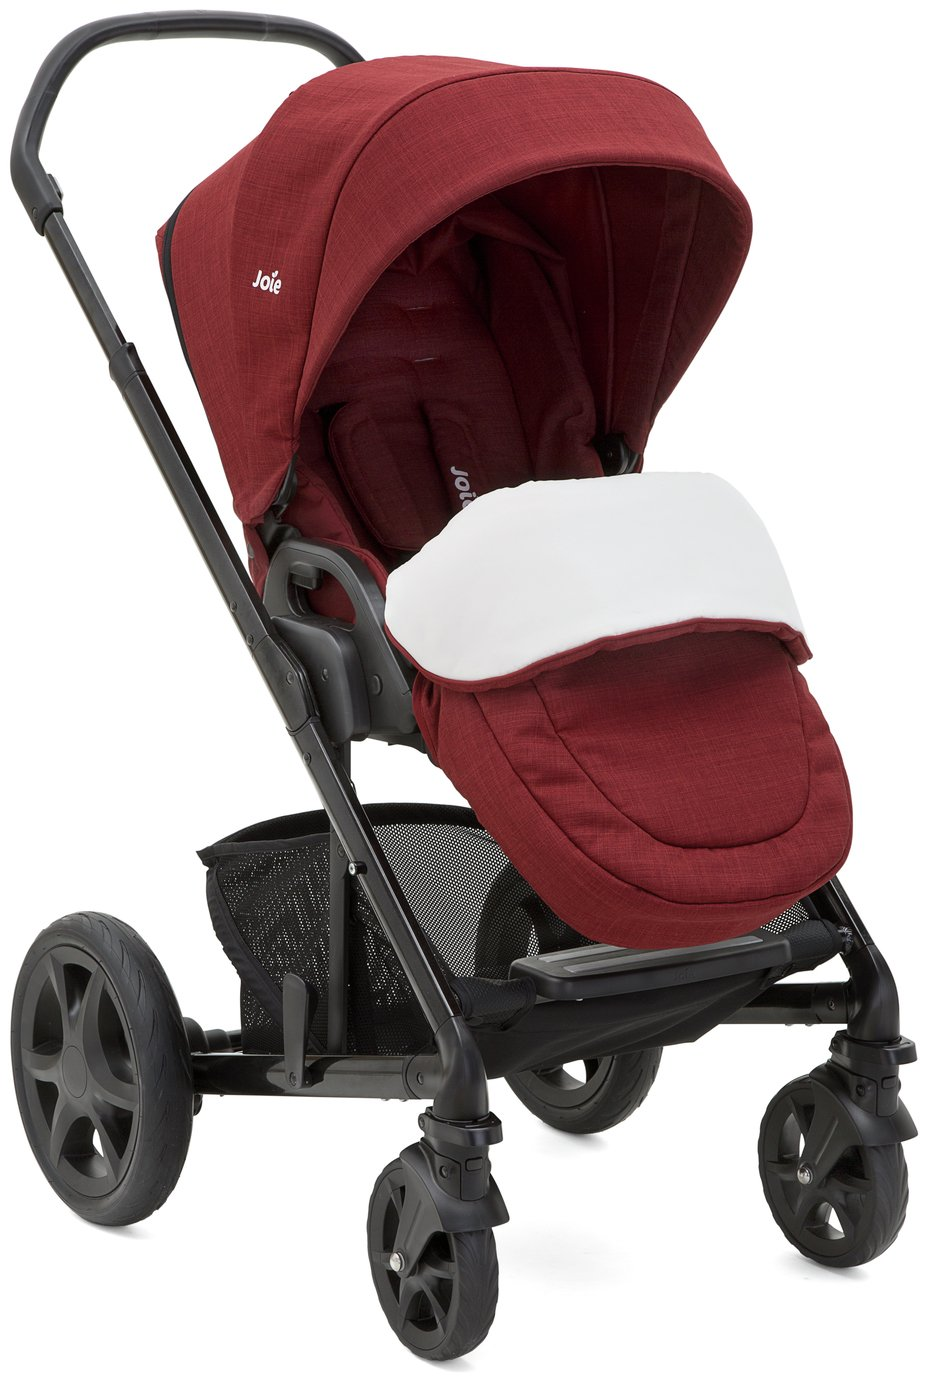 Joie Cranberry Chrome DLX Pushchair & Carry Cot